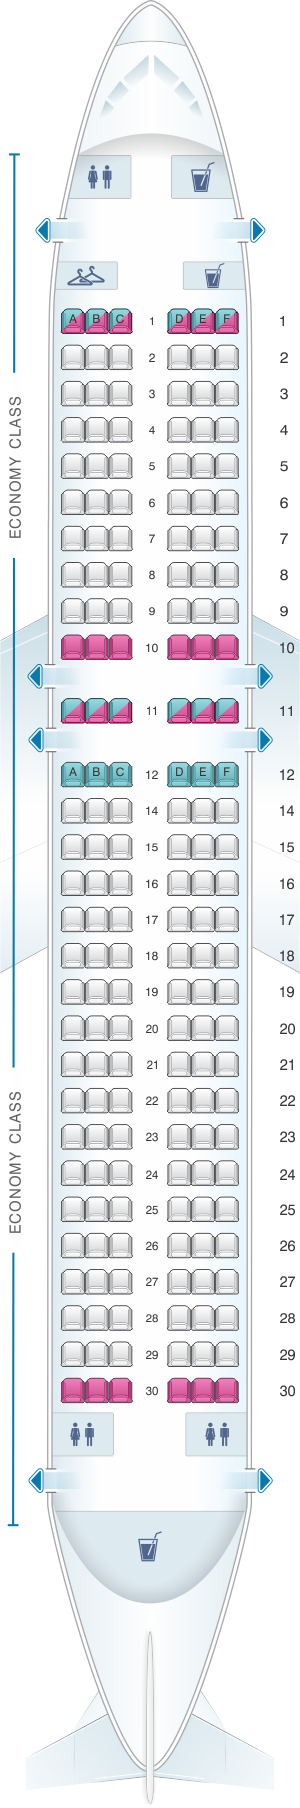 Seat map for Air France Airbus A320 Metropolitan V2